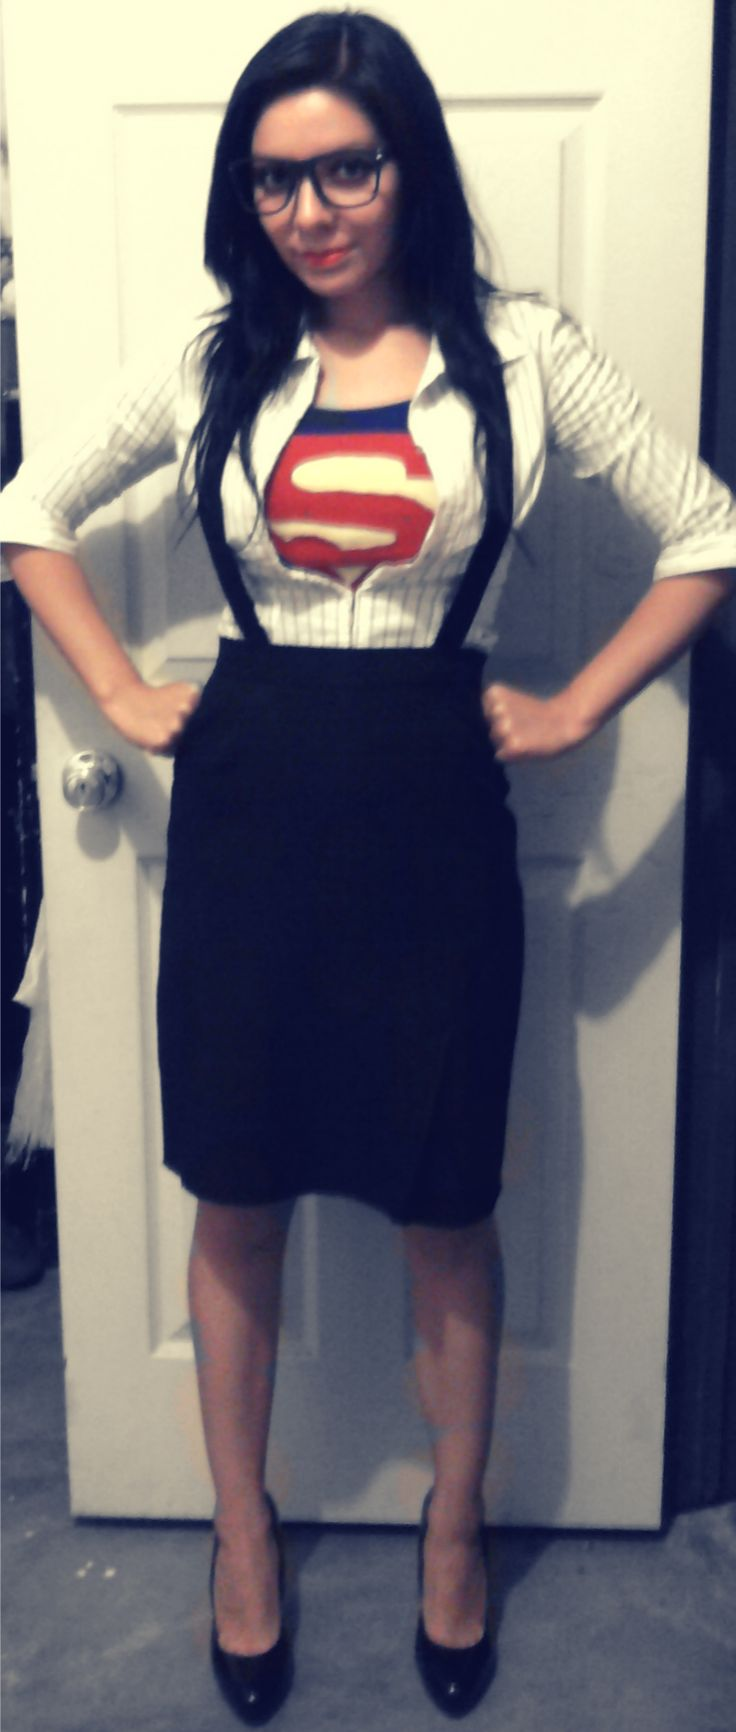 Best 10+ Clark kent costume ideas on Pinterest | Lois lane costume ...